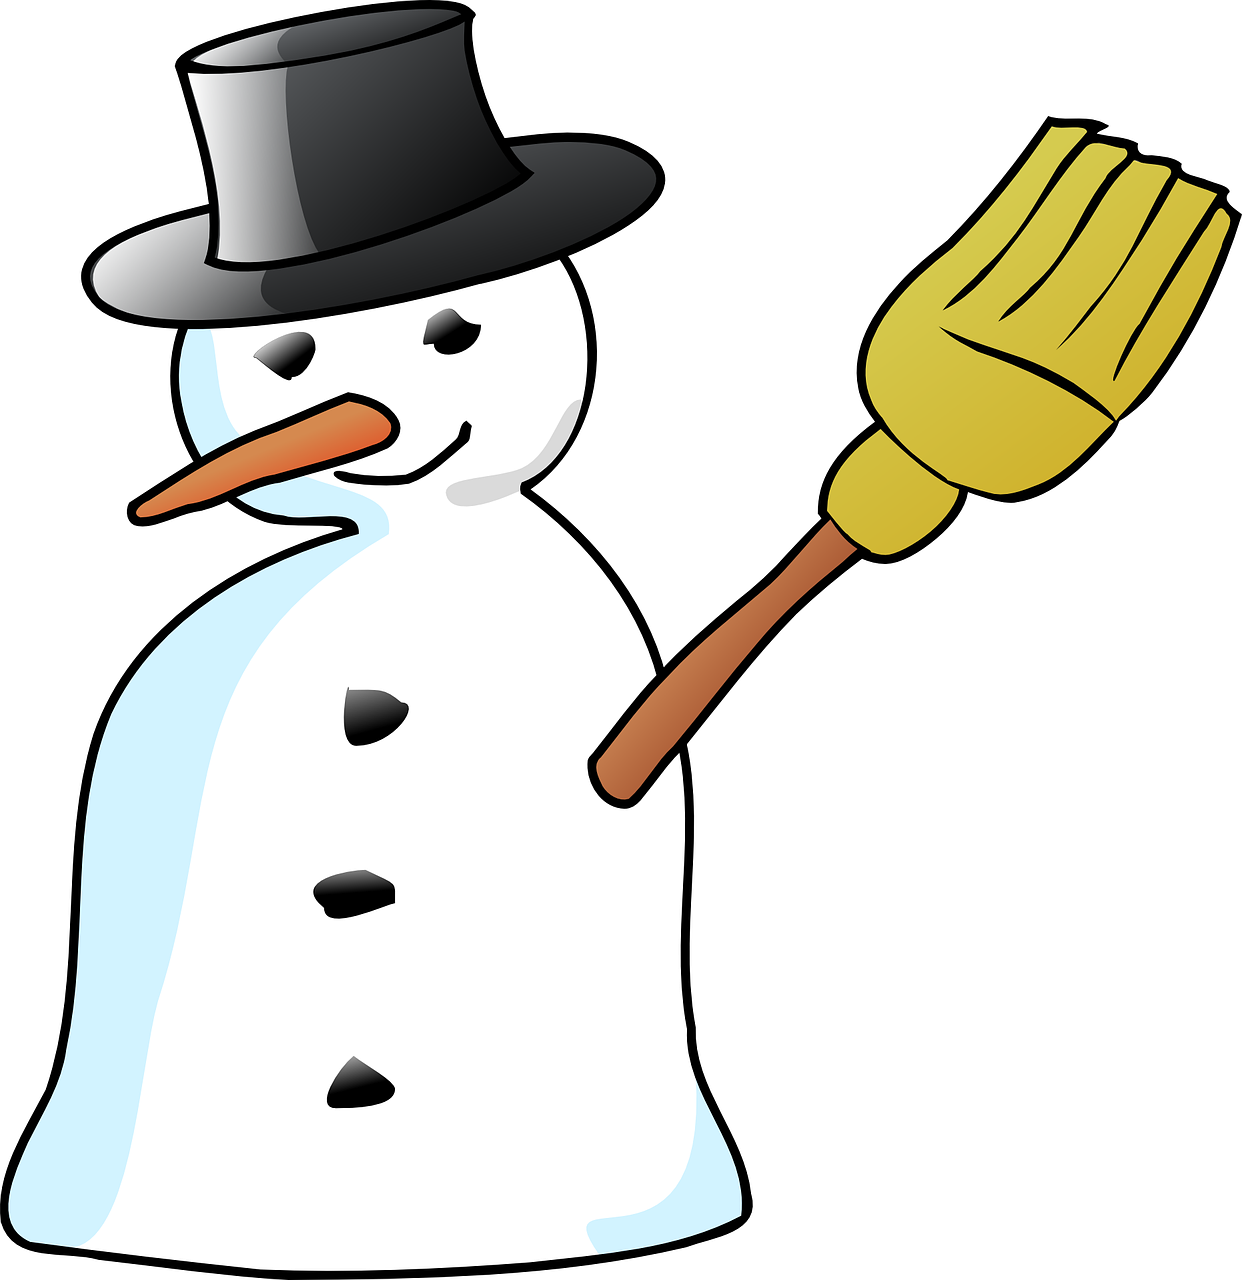 Snowman hat broom carrot. Holiday clipart stick